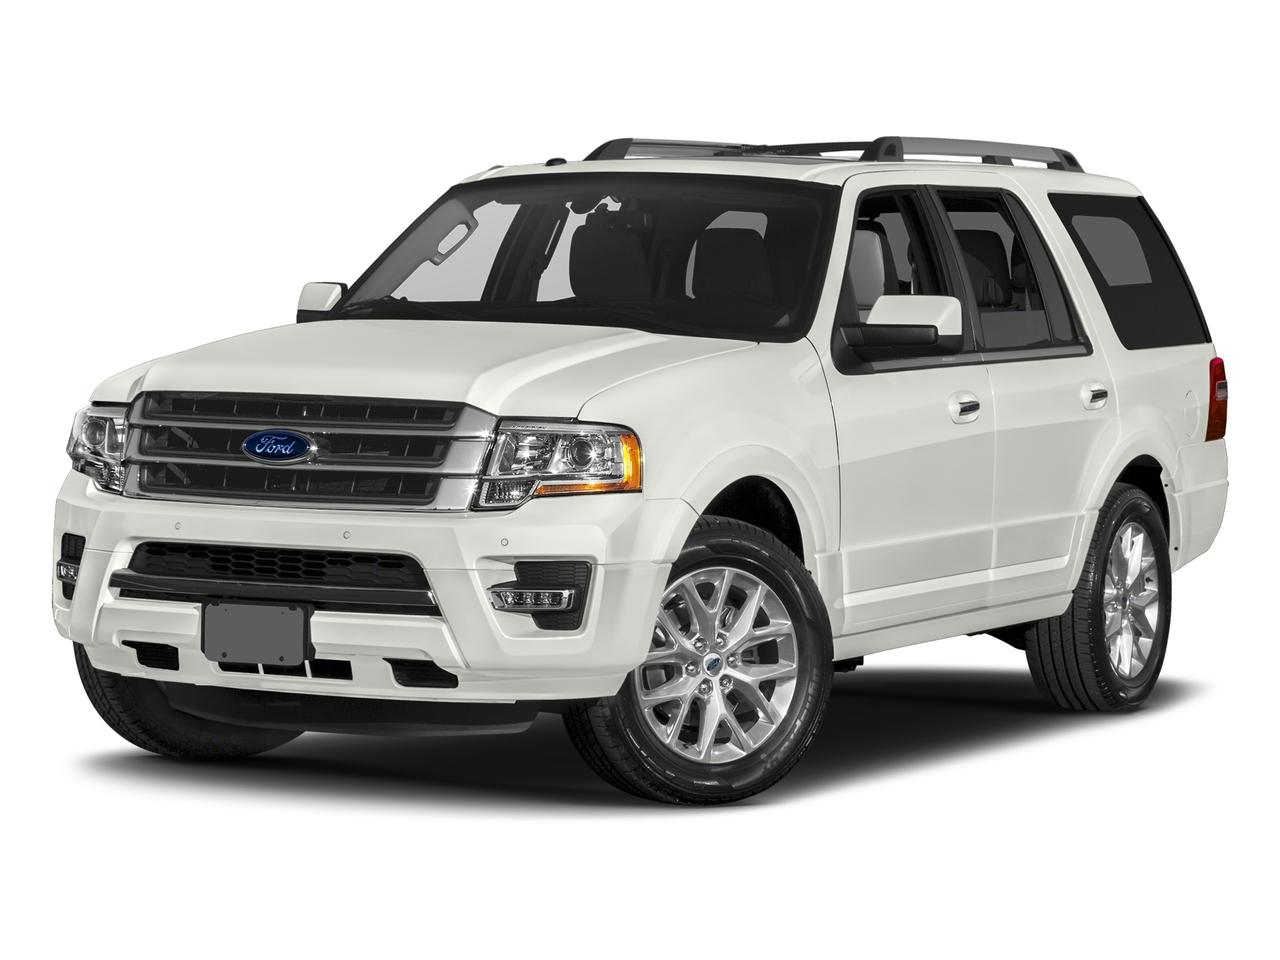 2017 Ford Expedition Vehicle Photo in Colorado Springs, CO 80920